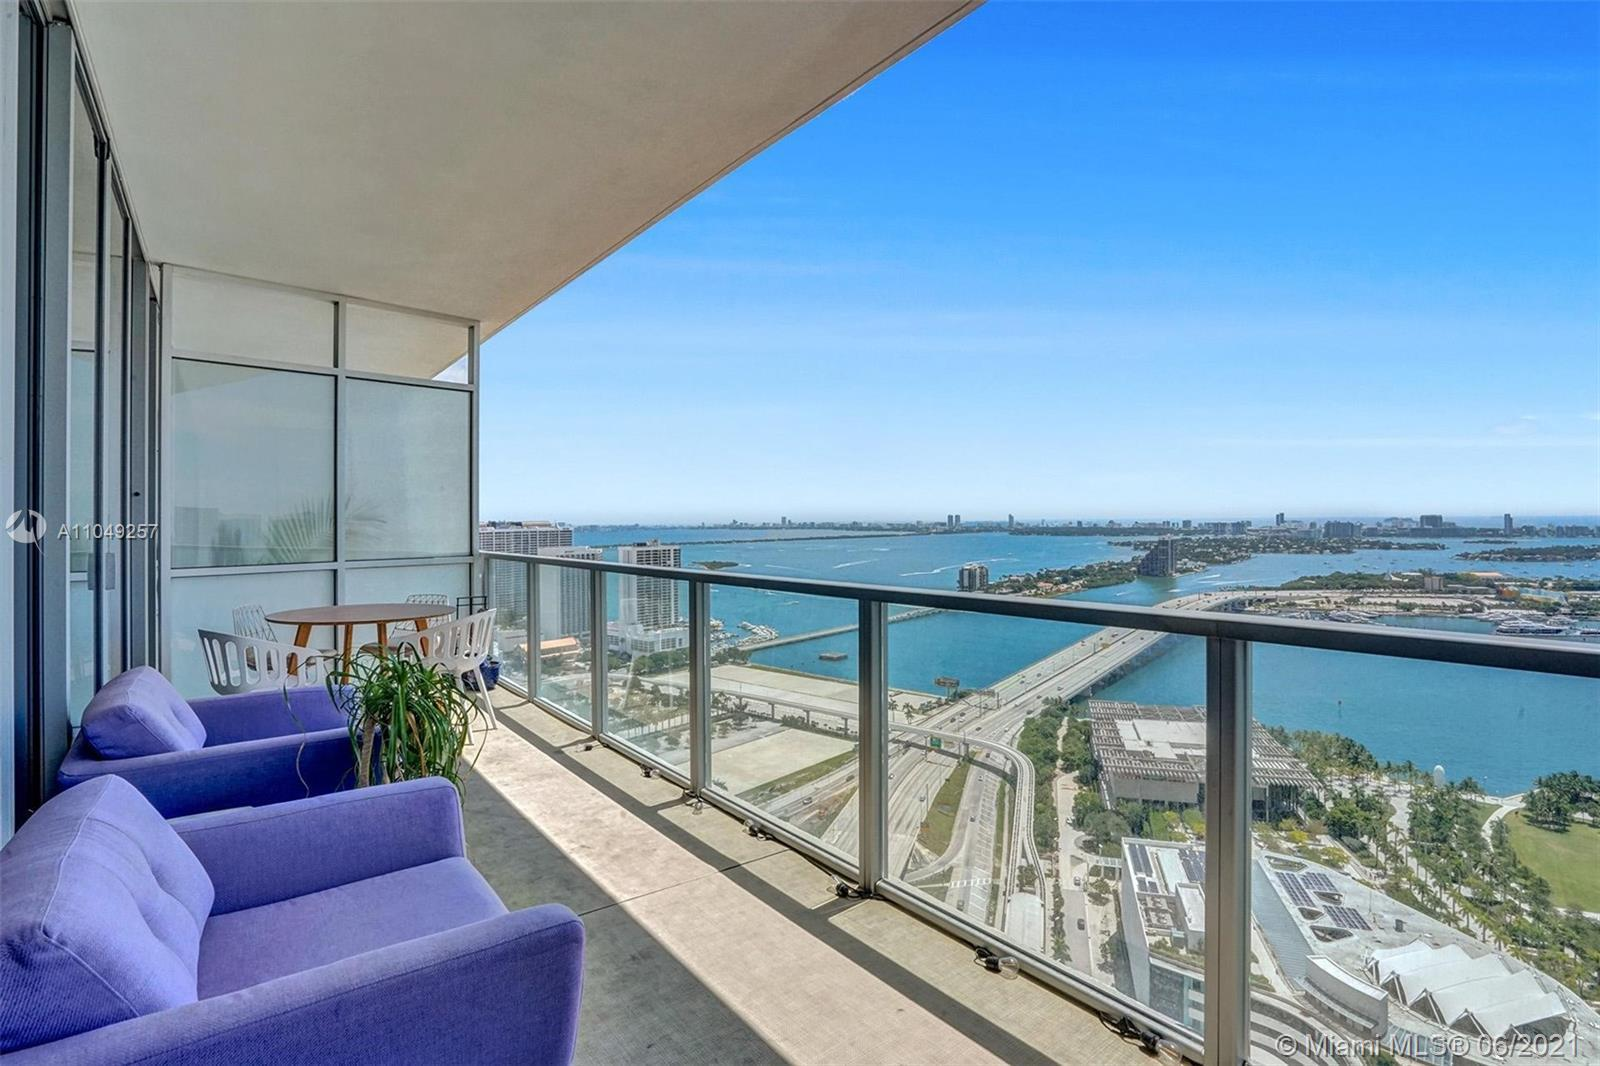 2BD/2.5 BTHS unit with breathtaking views of Biscayne Bay and Miami Beach. Unit features custom buil